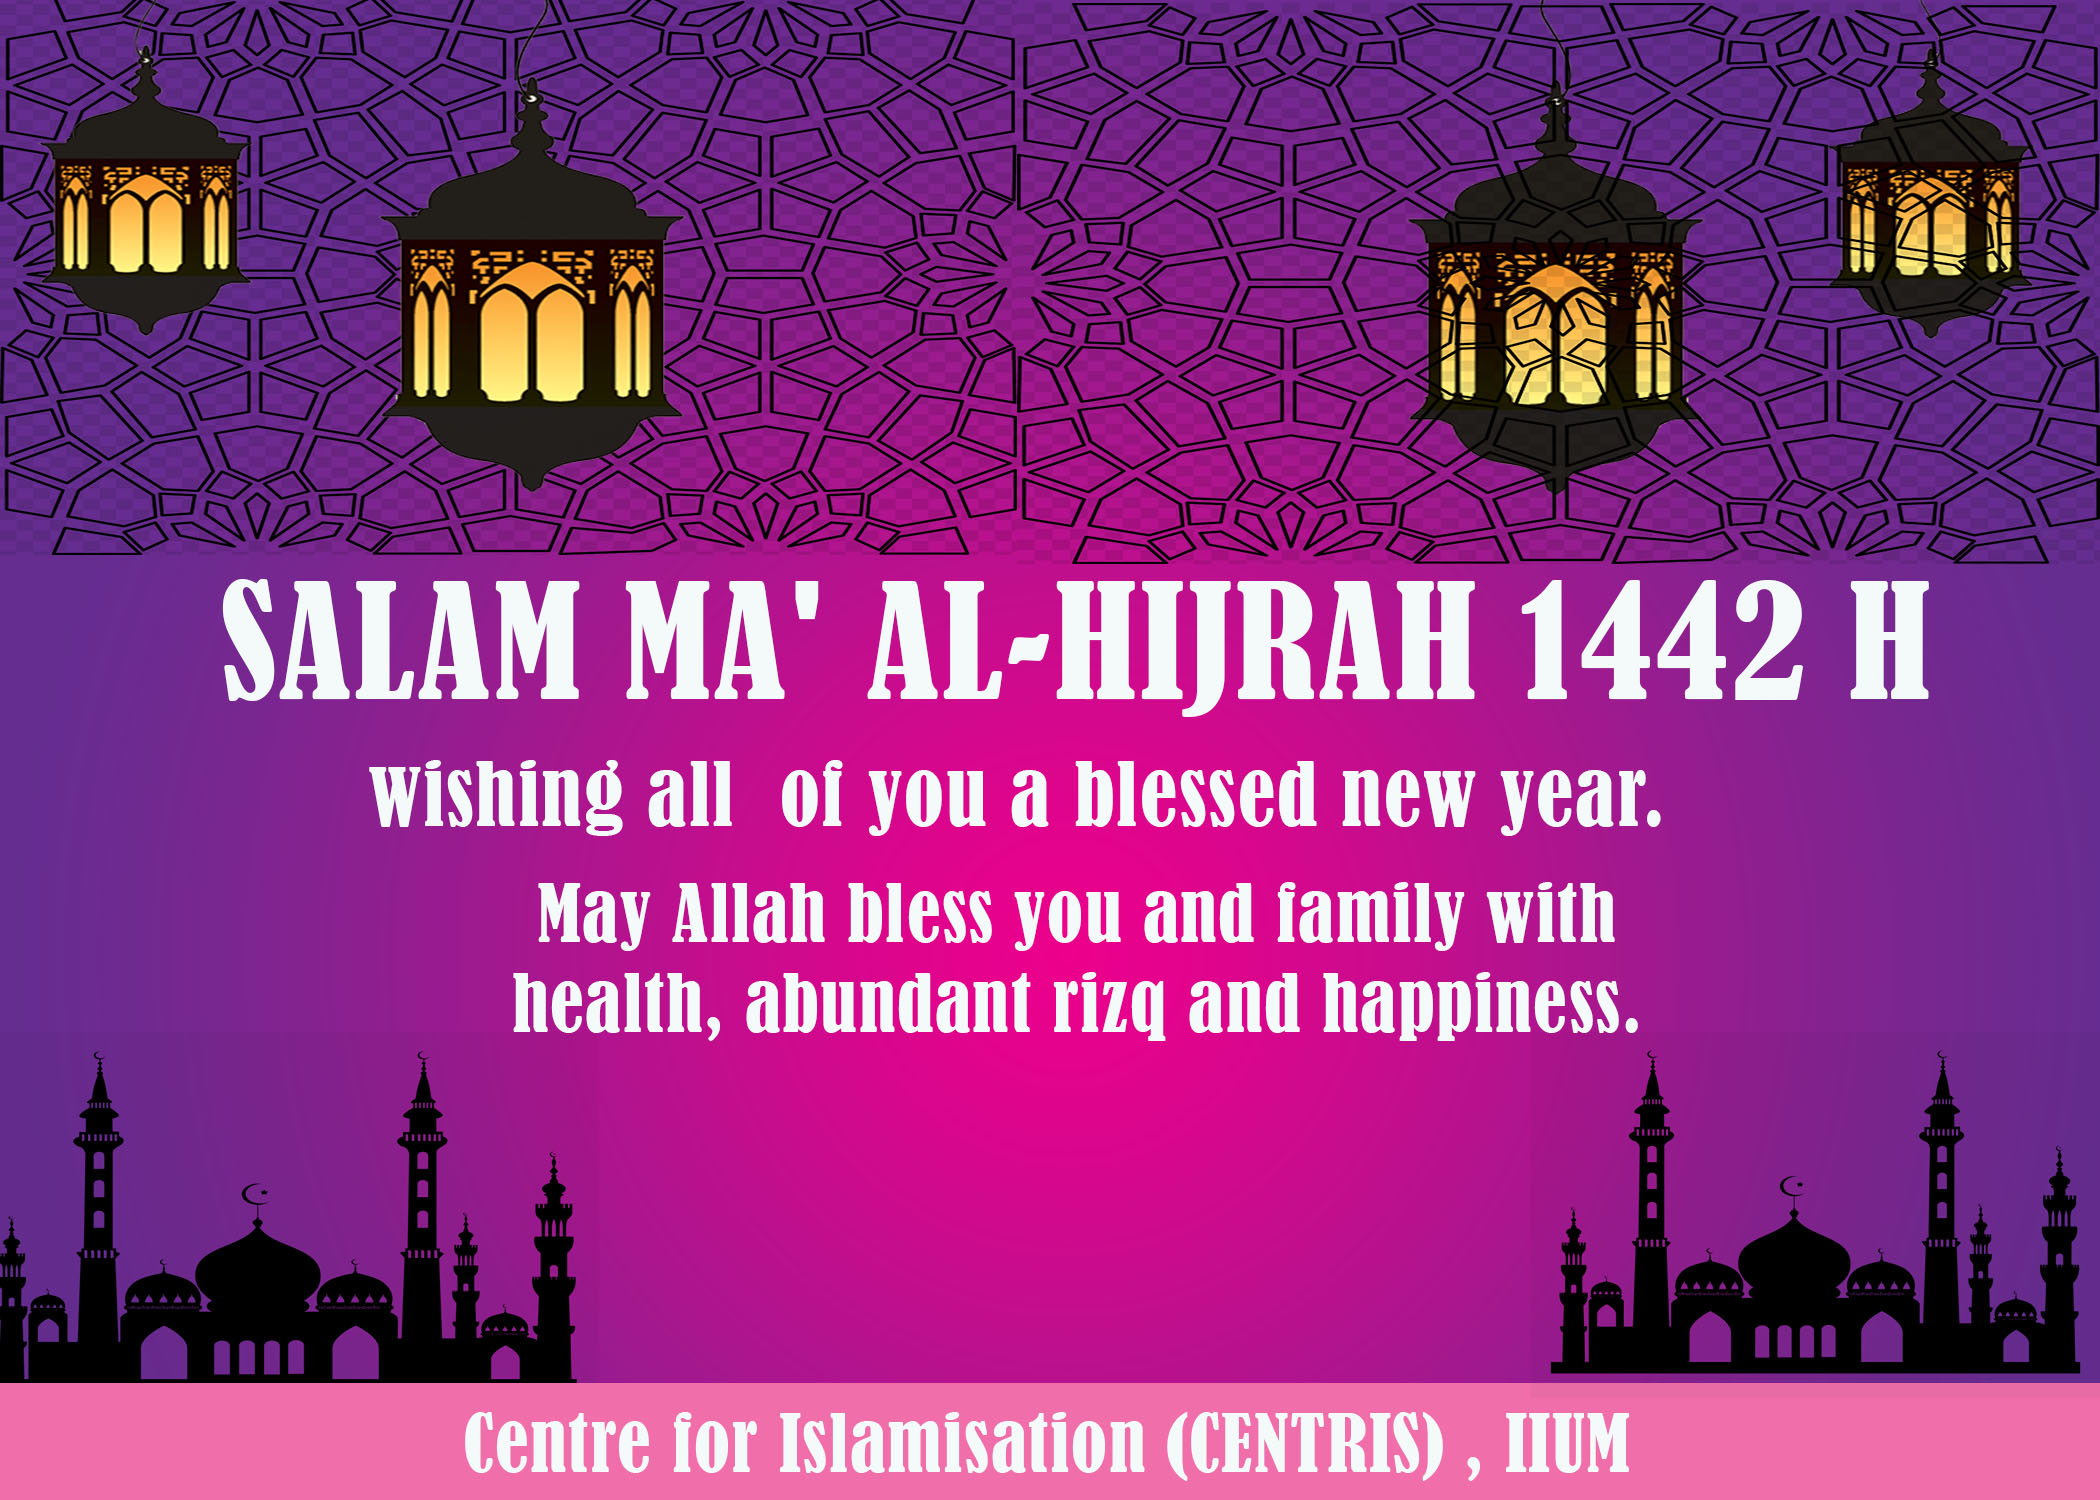 Salam Maal Hijrah 1442H from CENTRIS